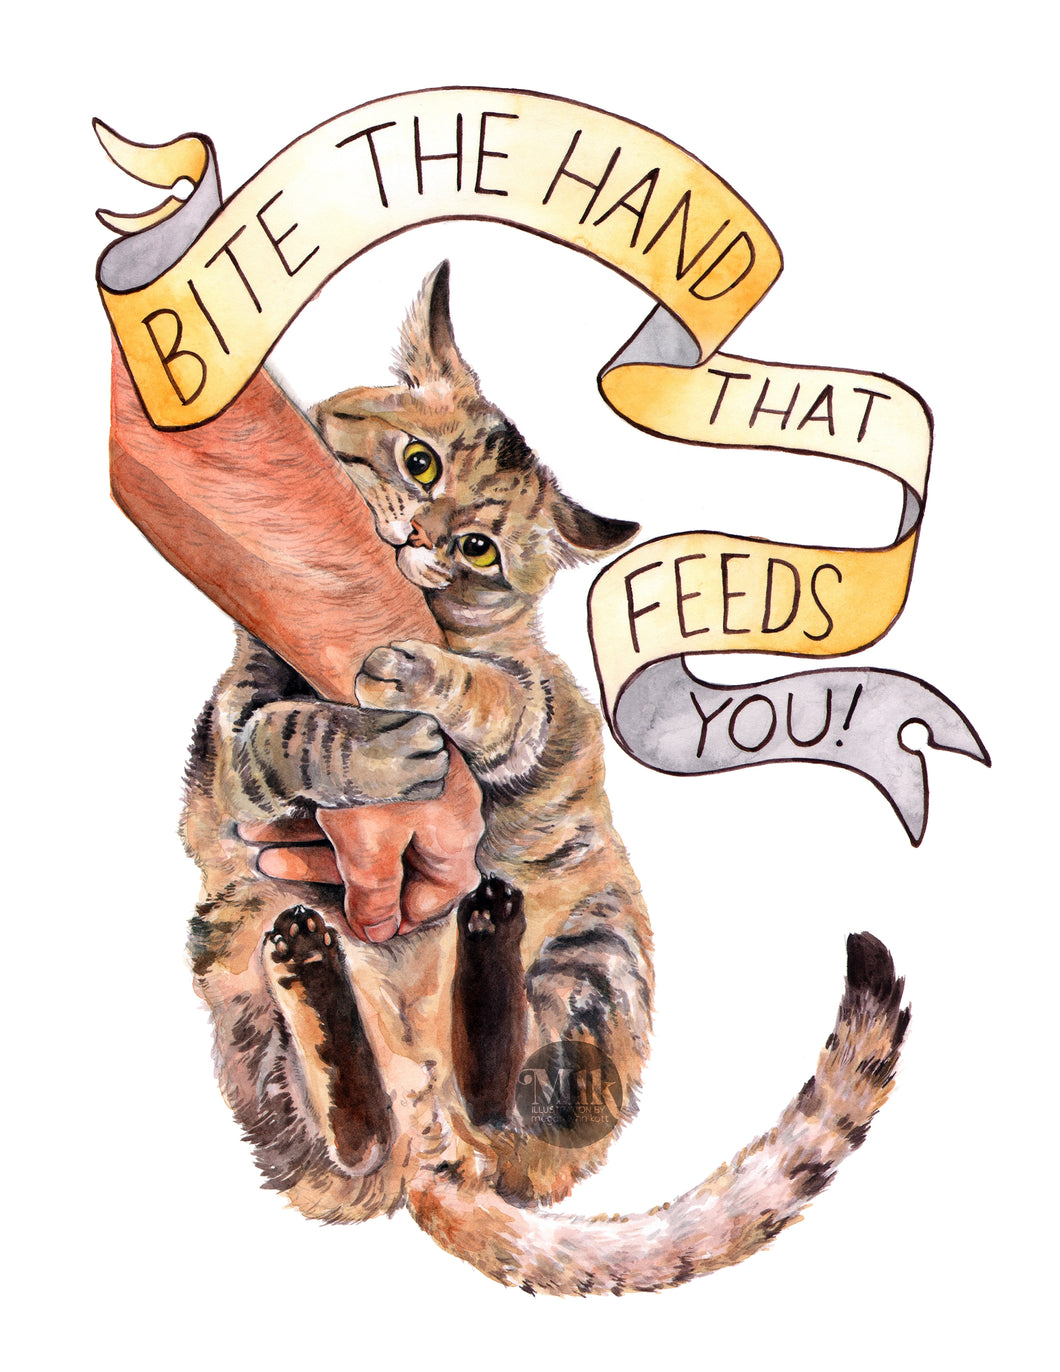 Bite The Hand That Feeds You - 11x14